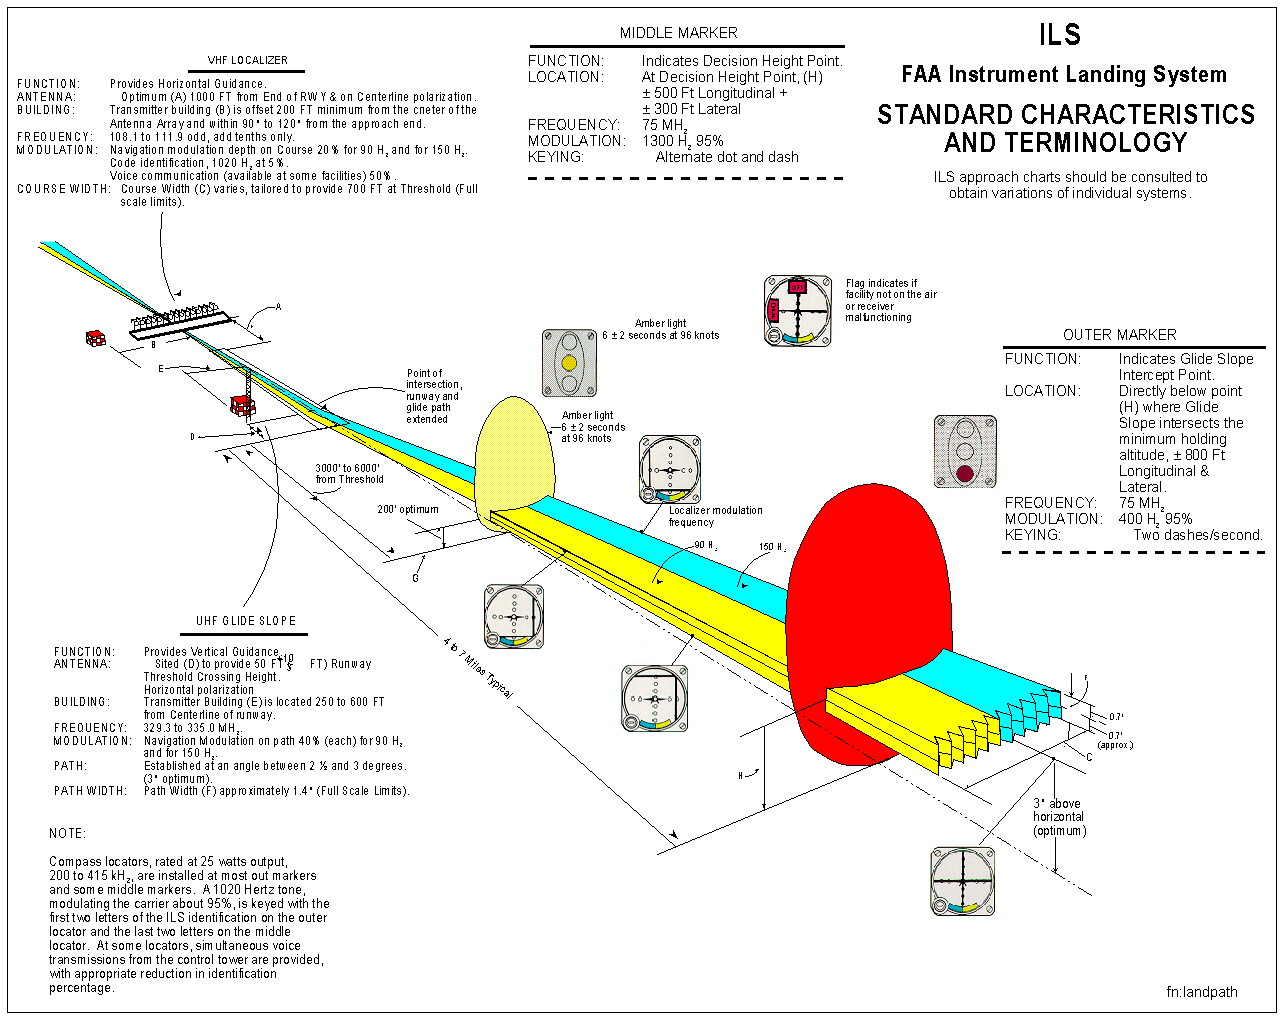 instrument landing system Instrument landing system (ils) 1 ils instrument landing system prepared by: ahamd sajjad safi acai-cns instructor 2 ils-introduction an instrument landing system (ils) is a ground- based radio beam transmitter that provides a direction to an aircraft approaching and landing on a runway approaching aircraft that tune their receiver to.